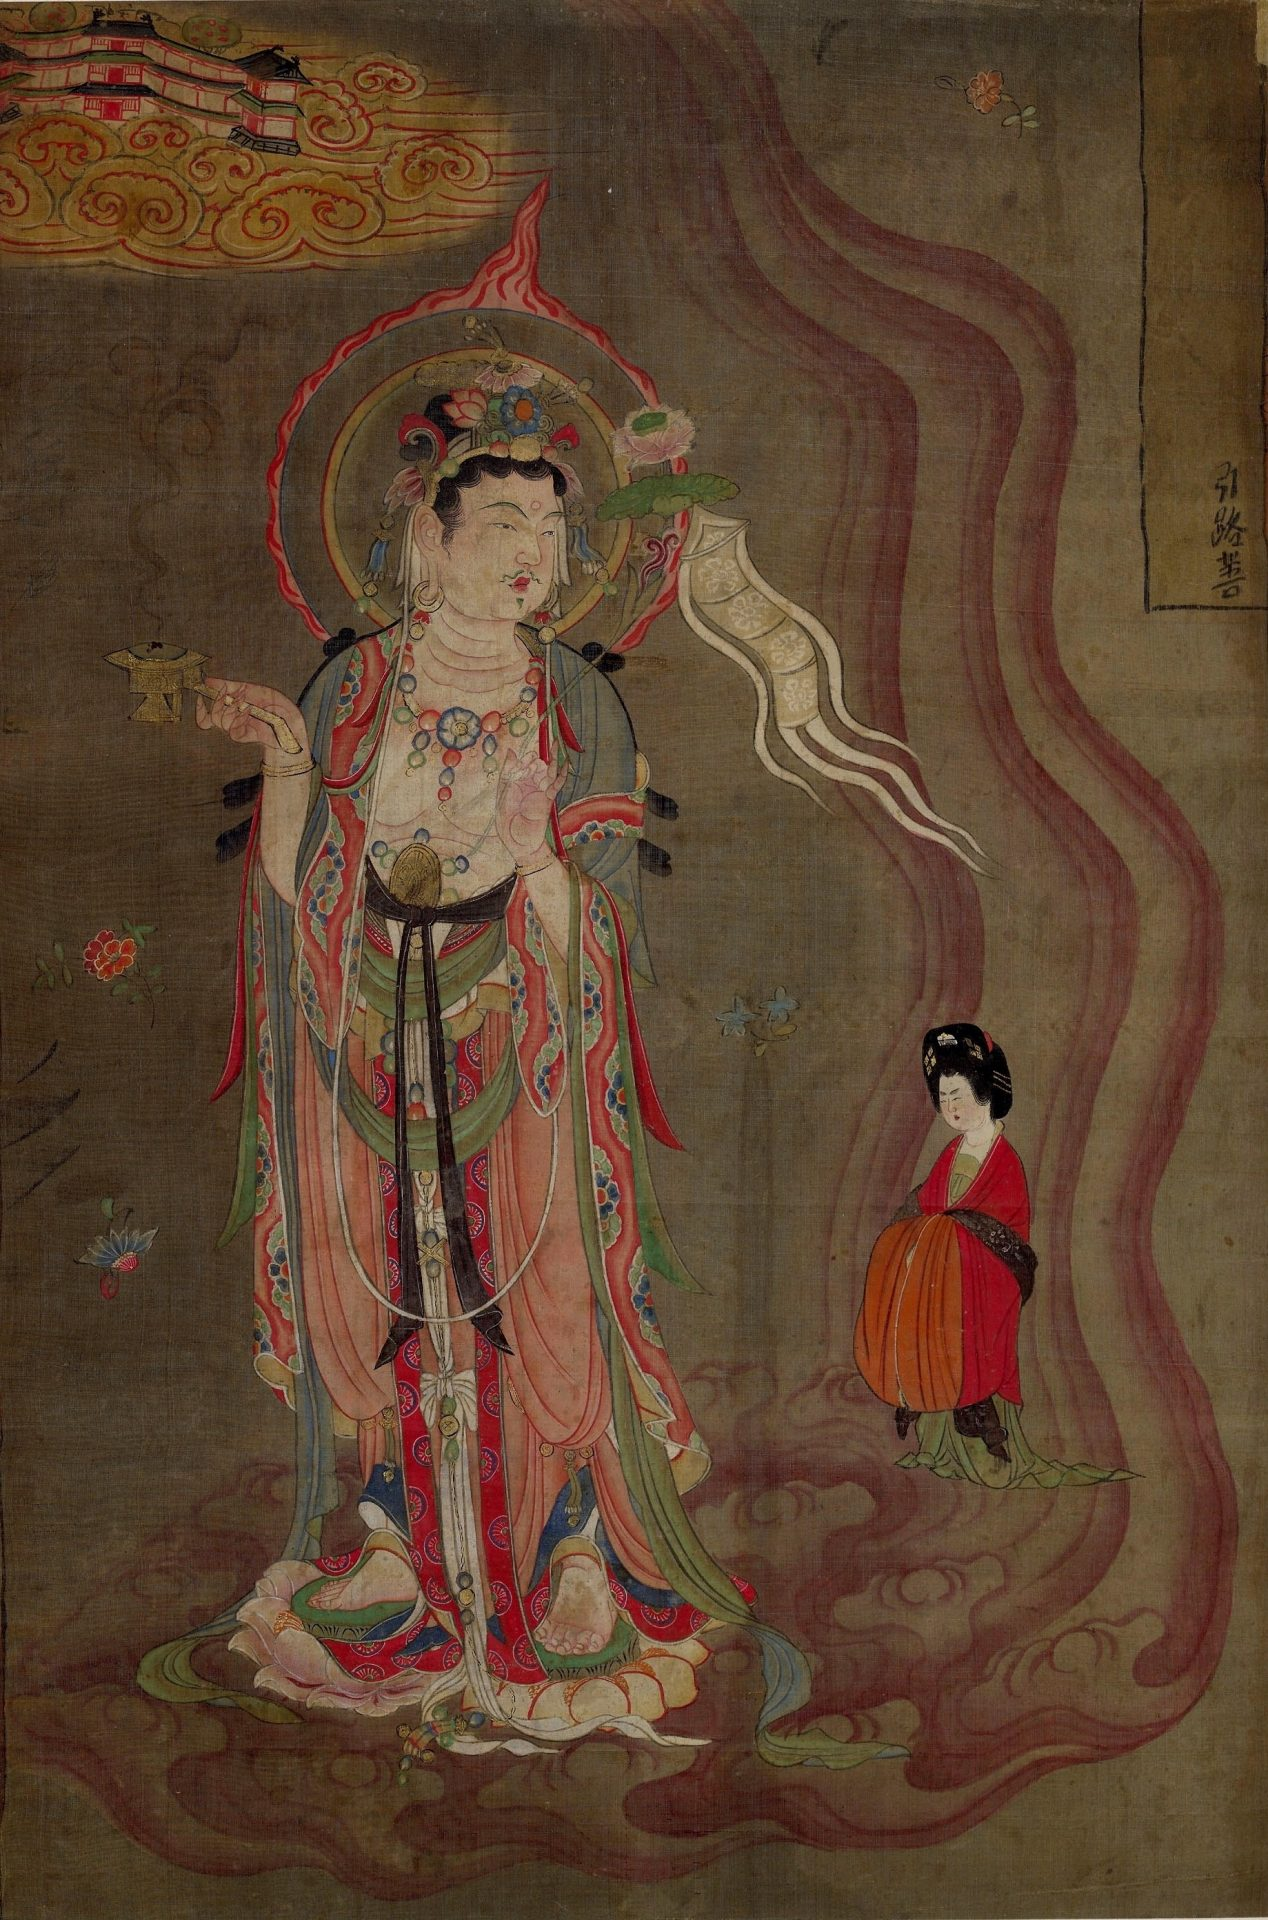 Bodhisattva leading a lady donor towards the Pure Lands. (Image: wikimedia / CC0 1.0)